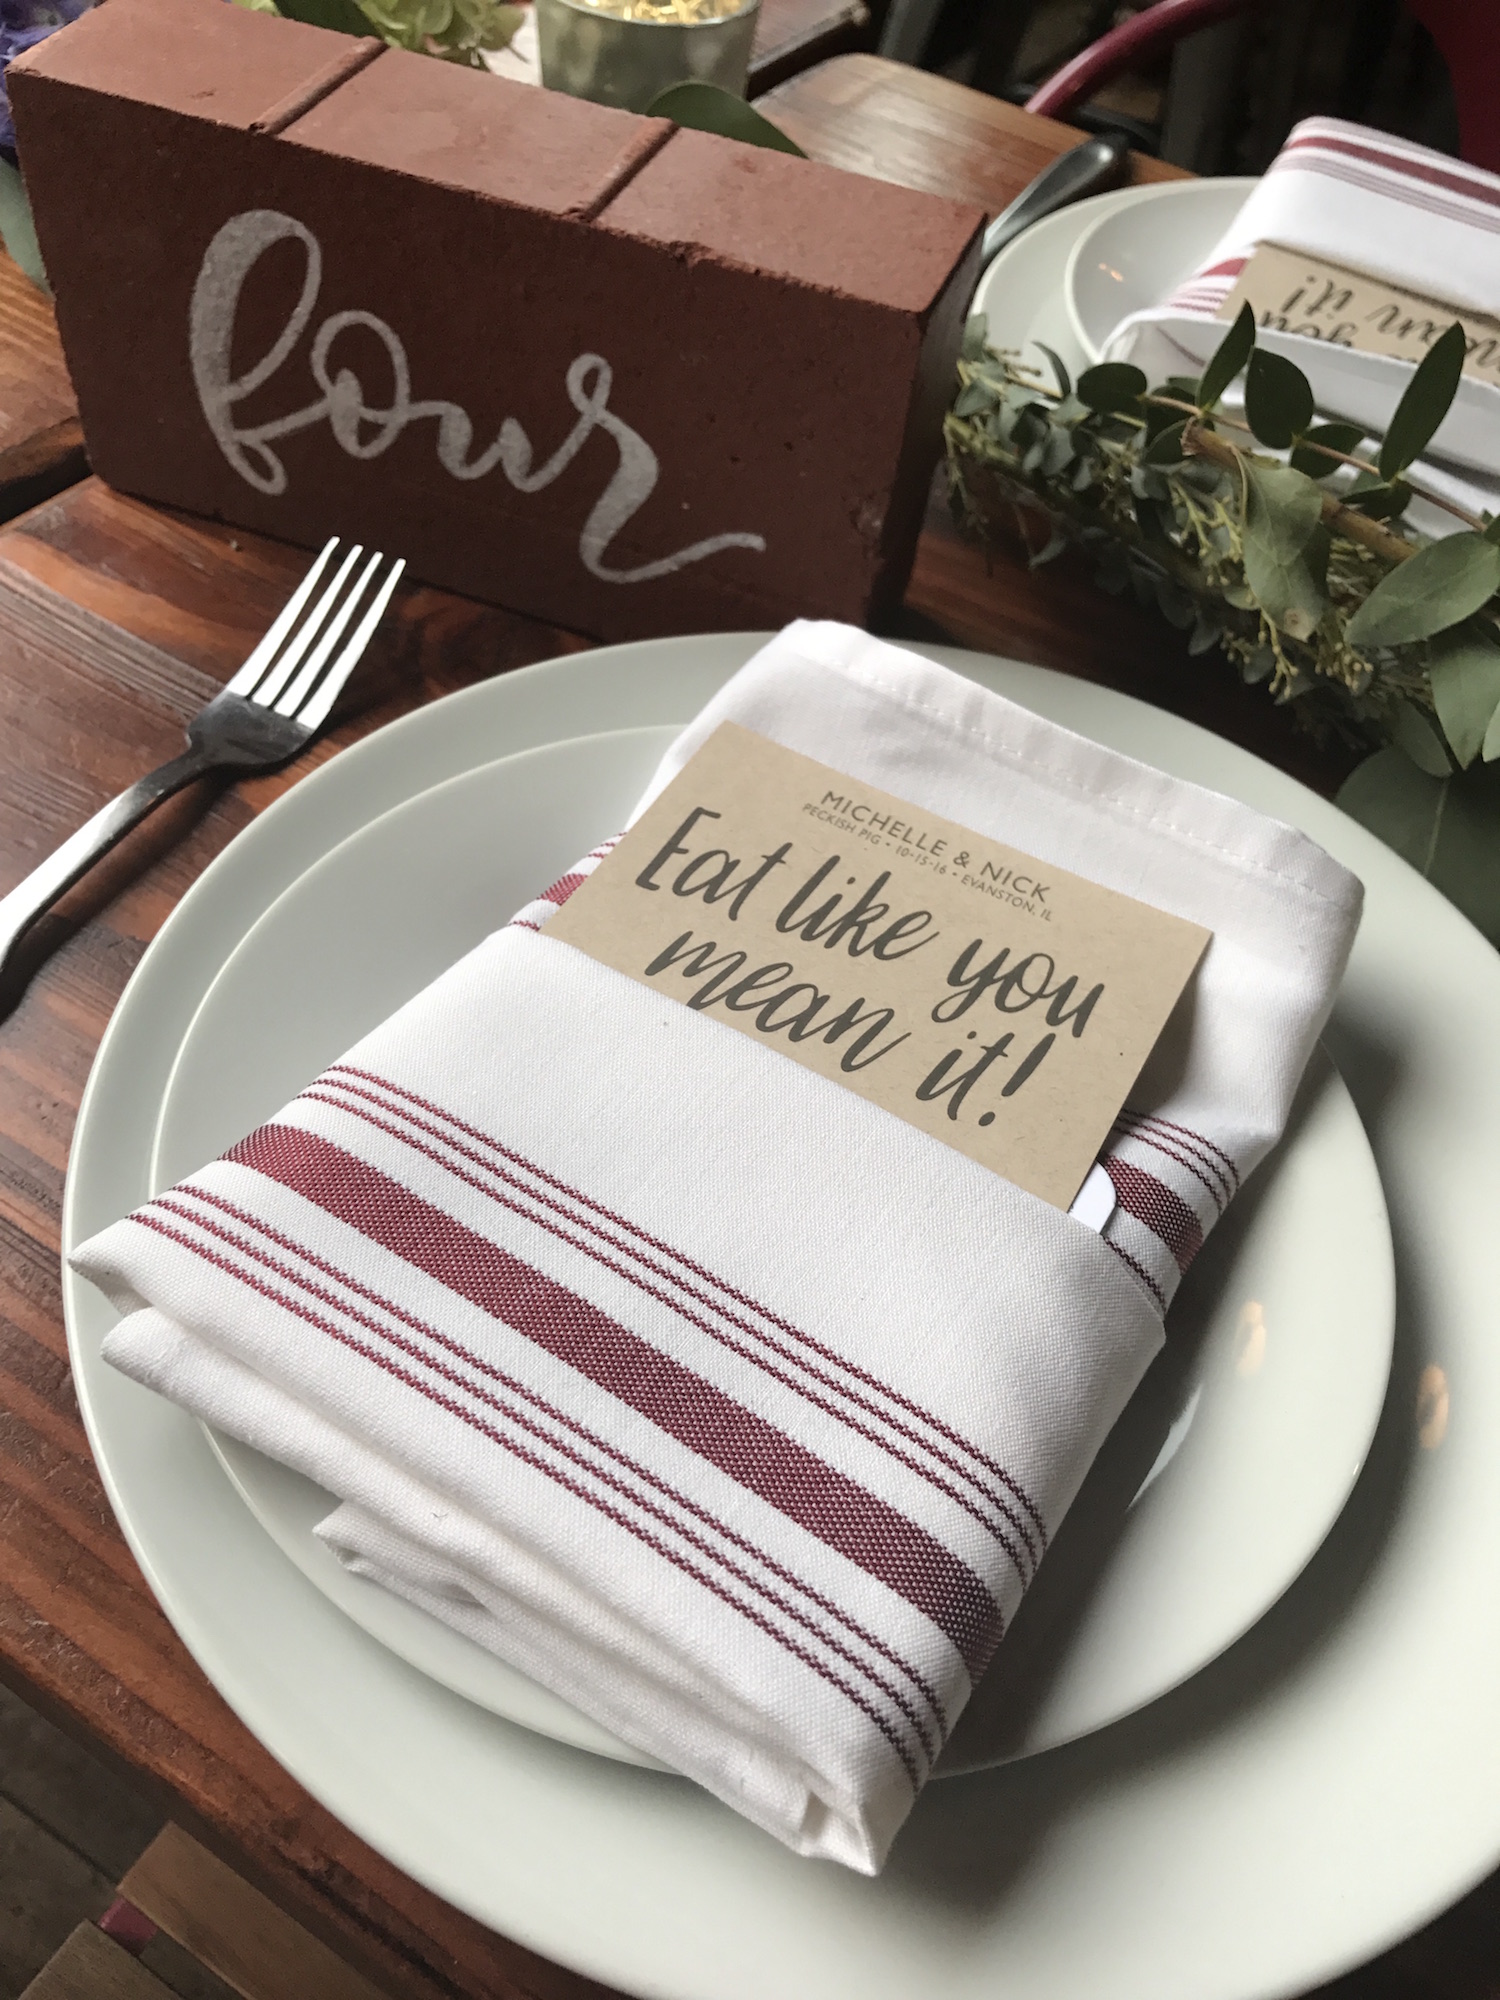 Industrial Chic Modern Rustic Wedding Menus on Kraft Paper with Charcoal Ink by Ashley Parker Creative